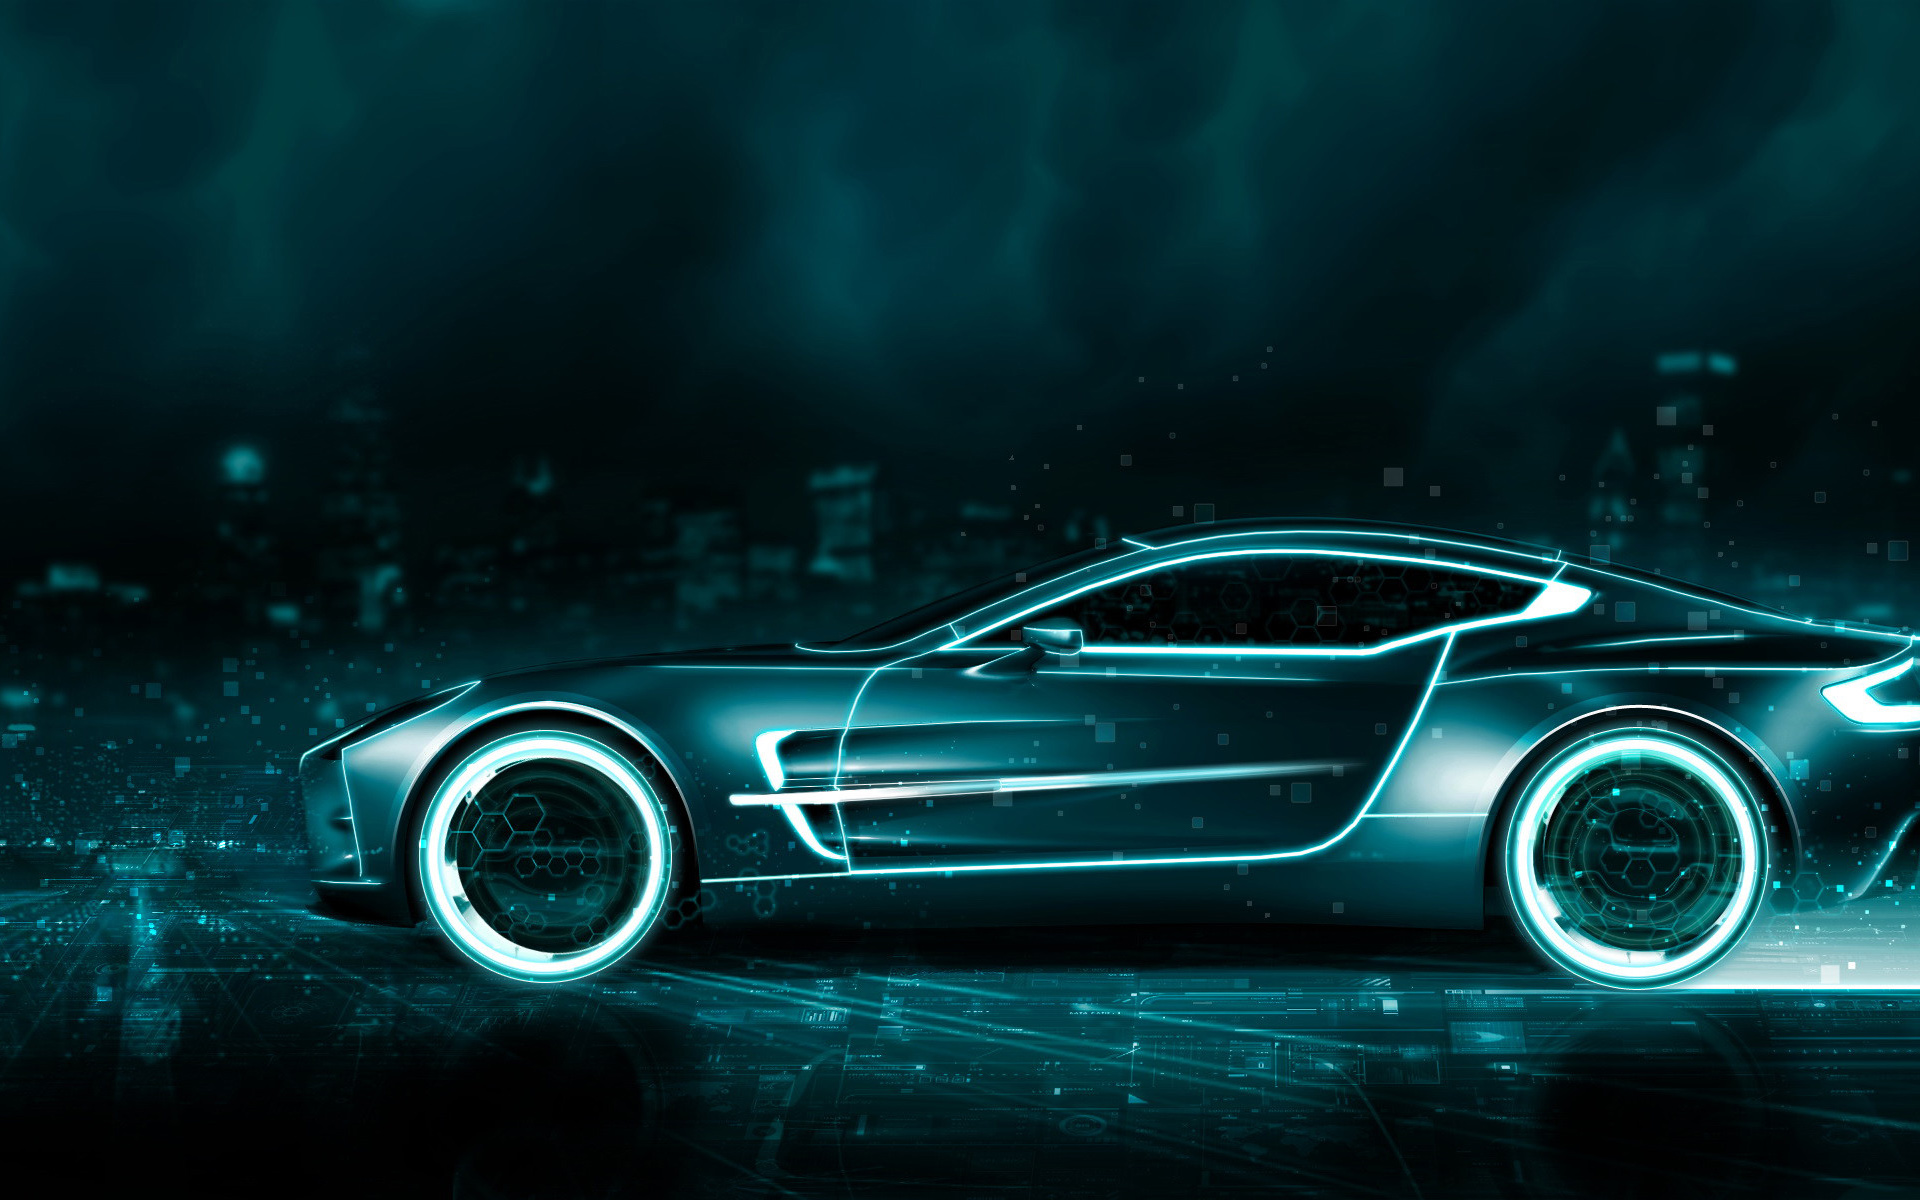 Tron Aston Martin Wallpapers HD Wallpapers 1920x1200